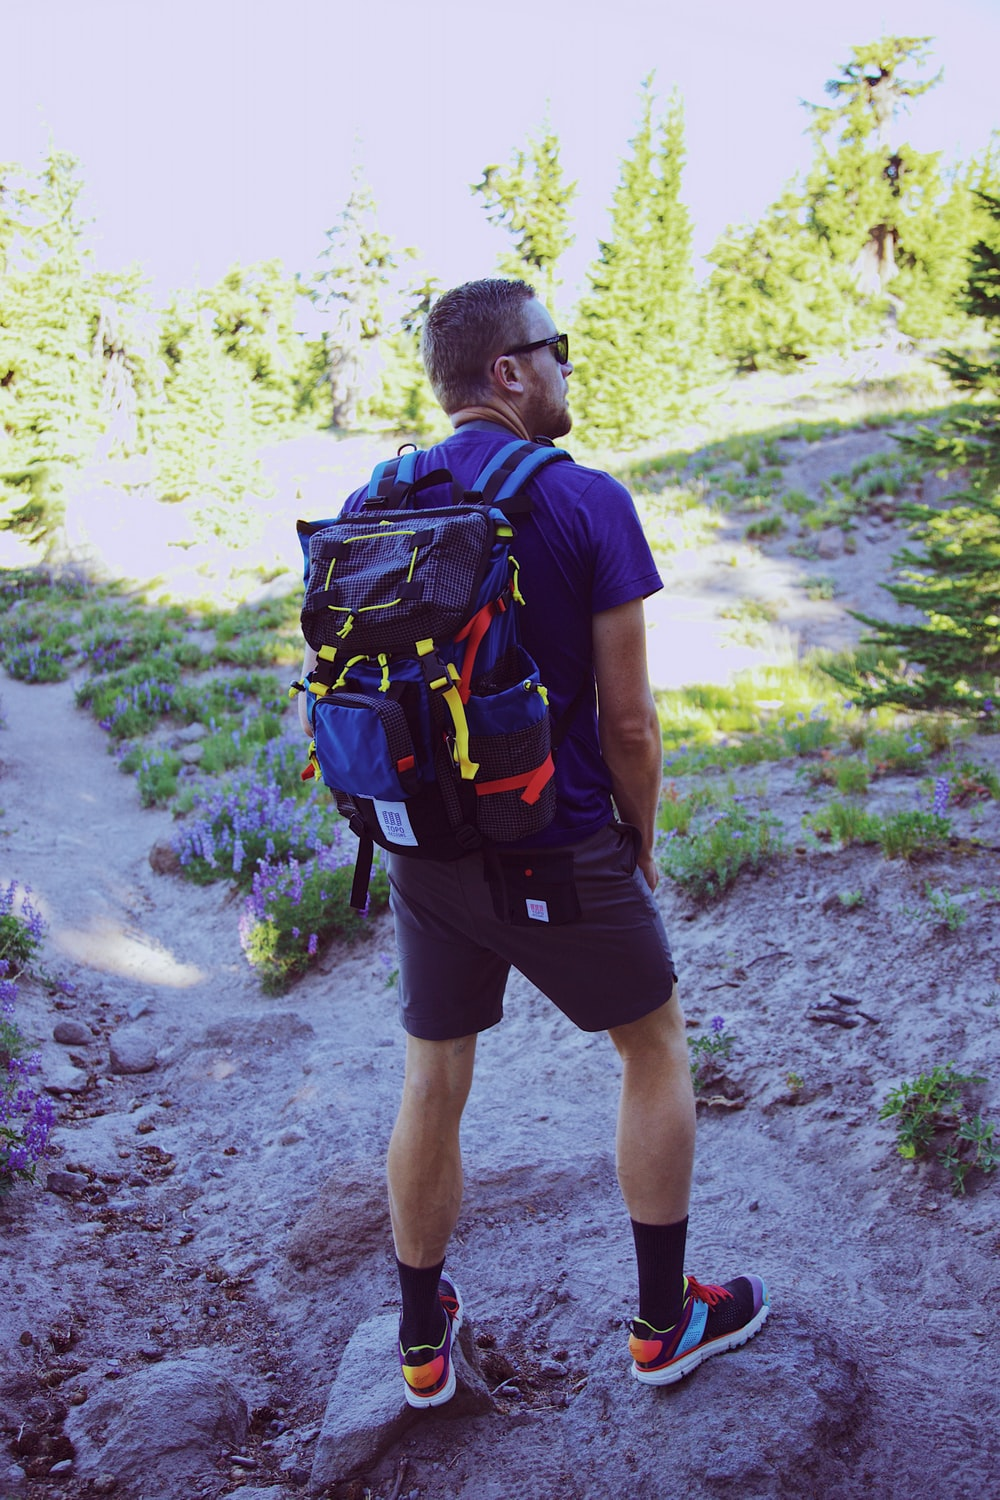 man in blue t-shirt and black shorts carrying black and blue hiking backpack walking on during